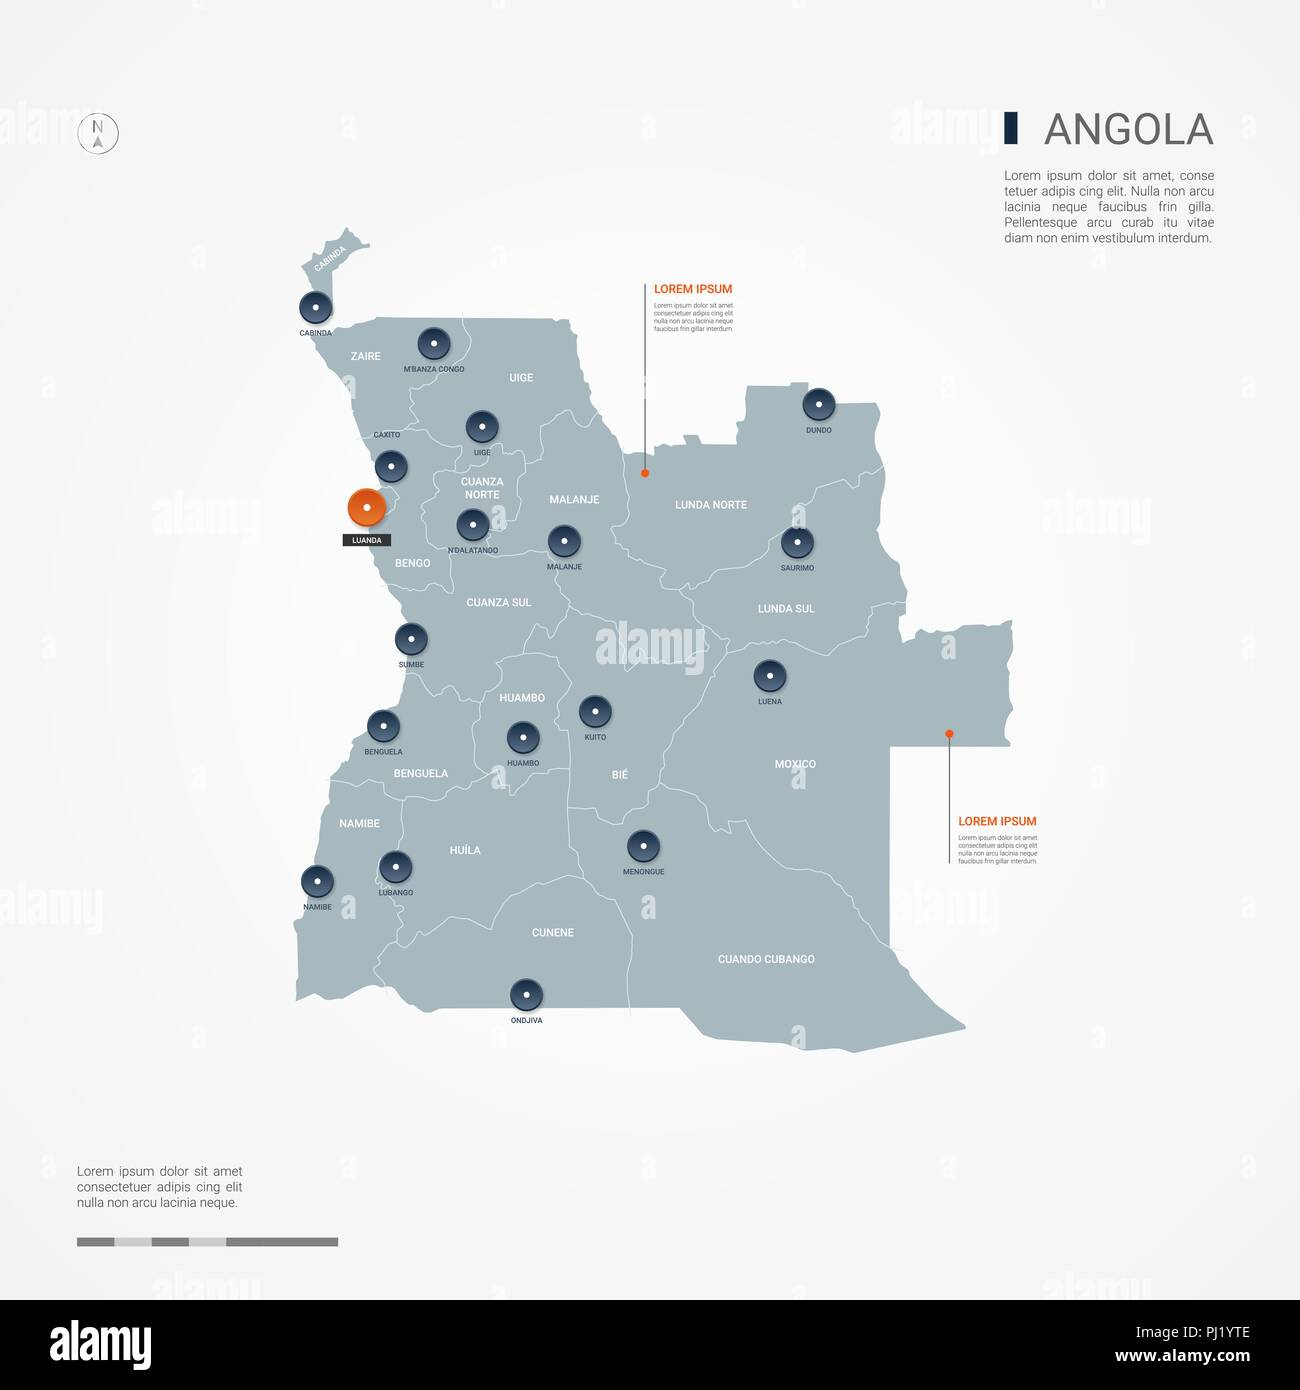 Angola with borders, cities, capital Luanda and administrative divisions. Infographic vector map. Editable layers clearly labeled. - Stock Vector